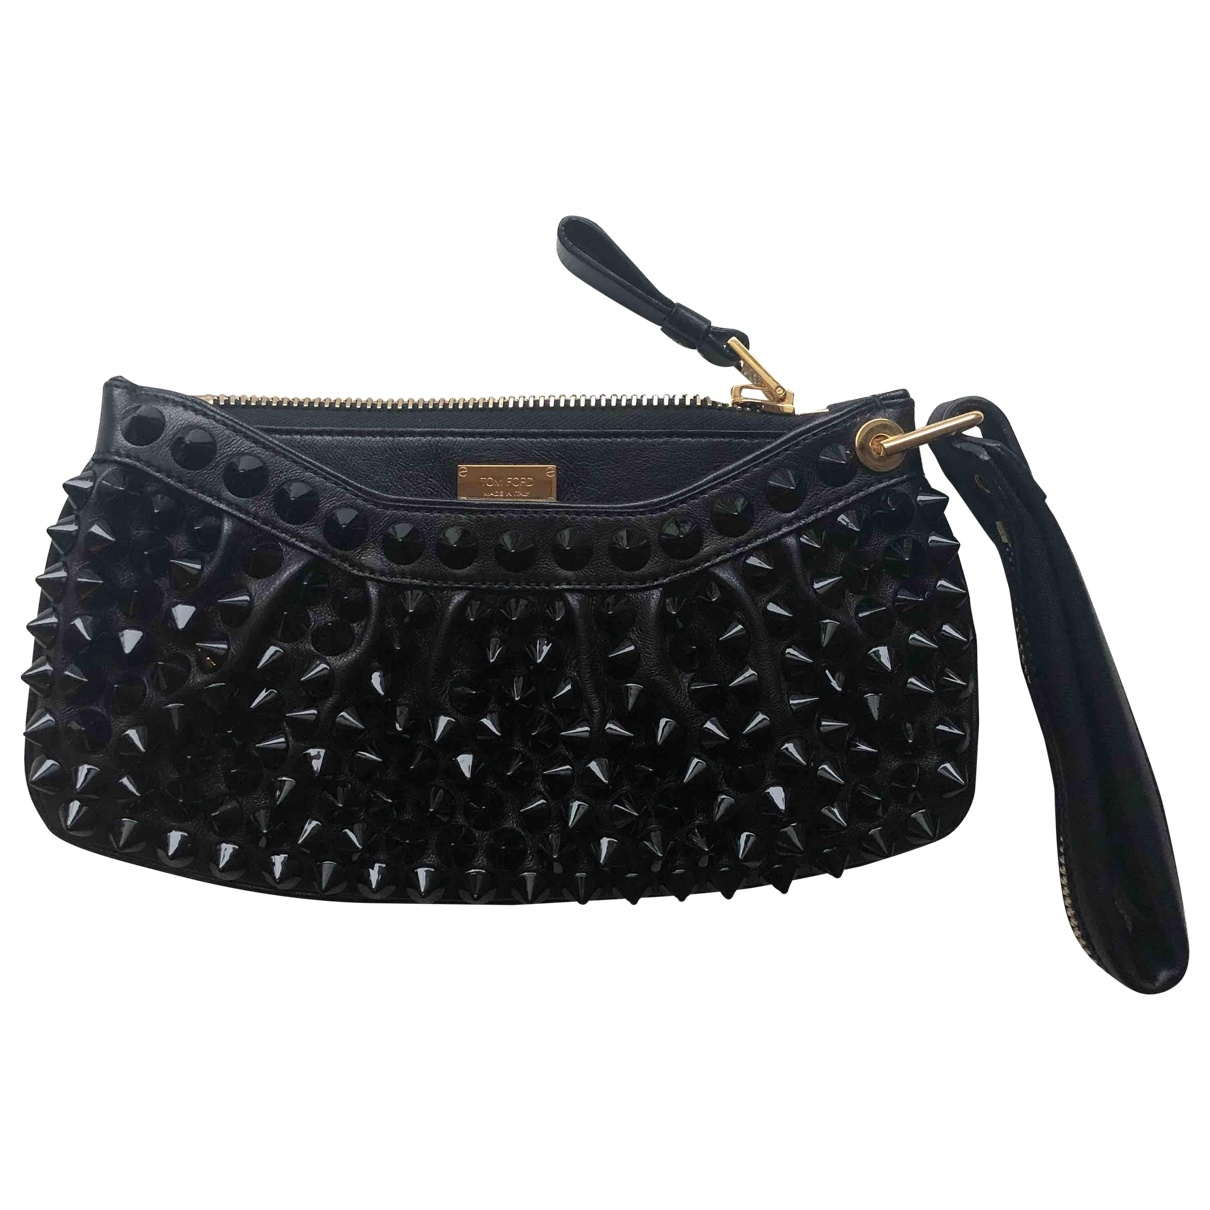 Tom Ford \N Clutch in  Schwarz Leder